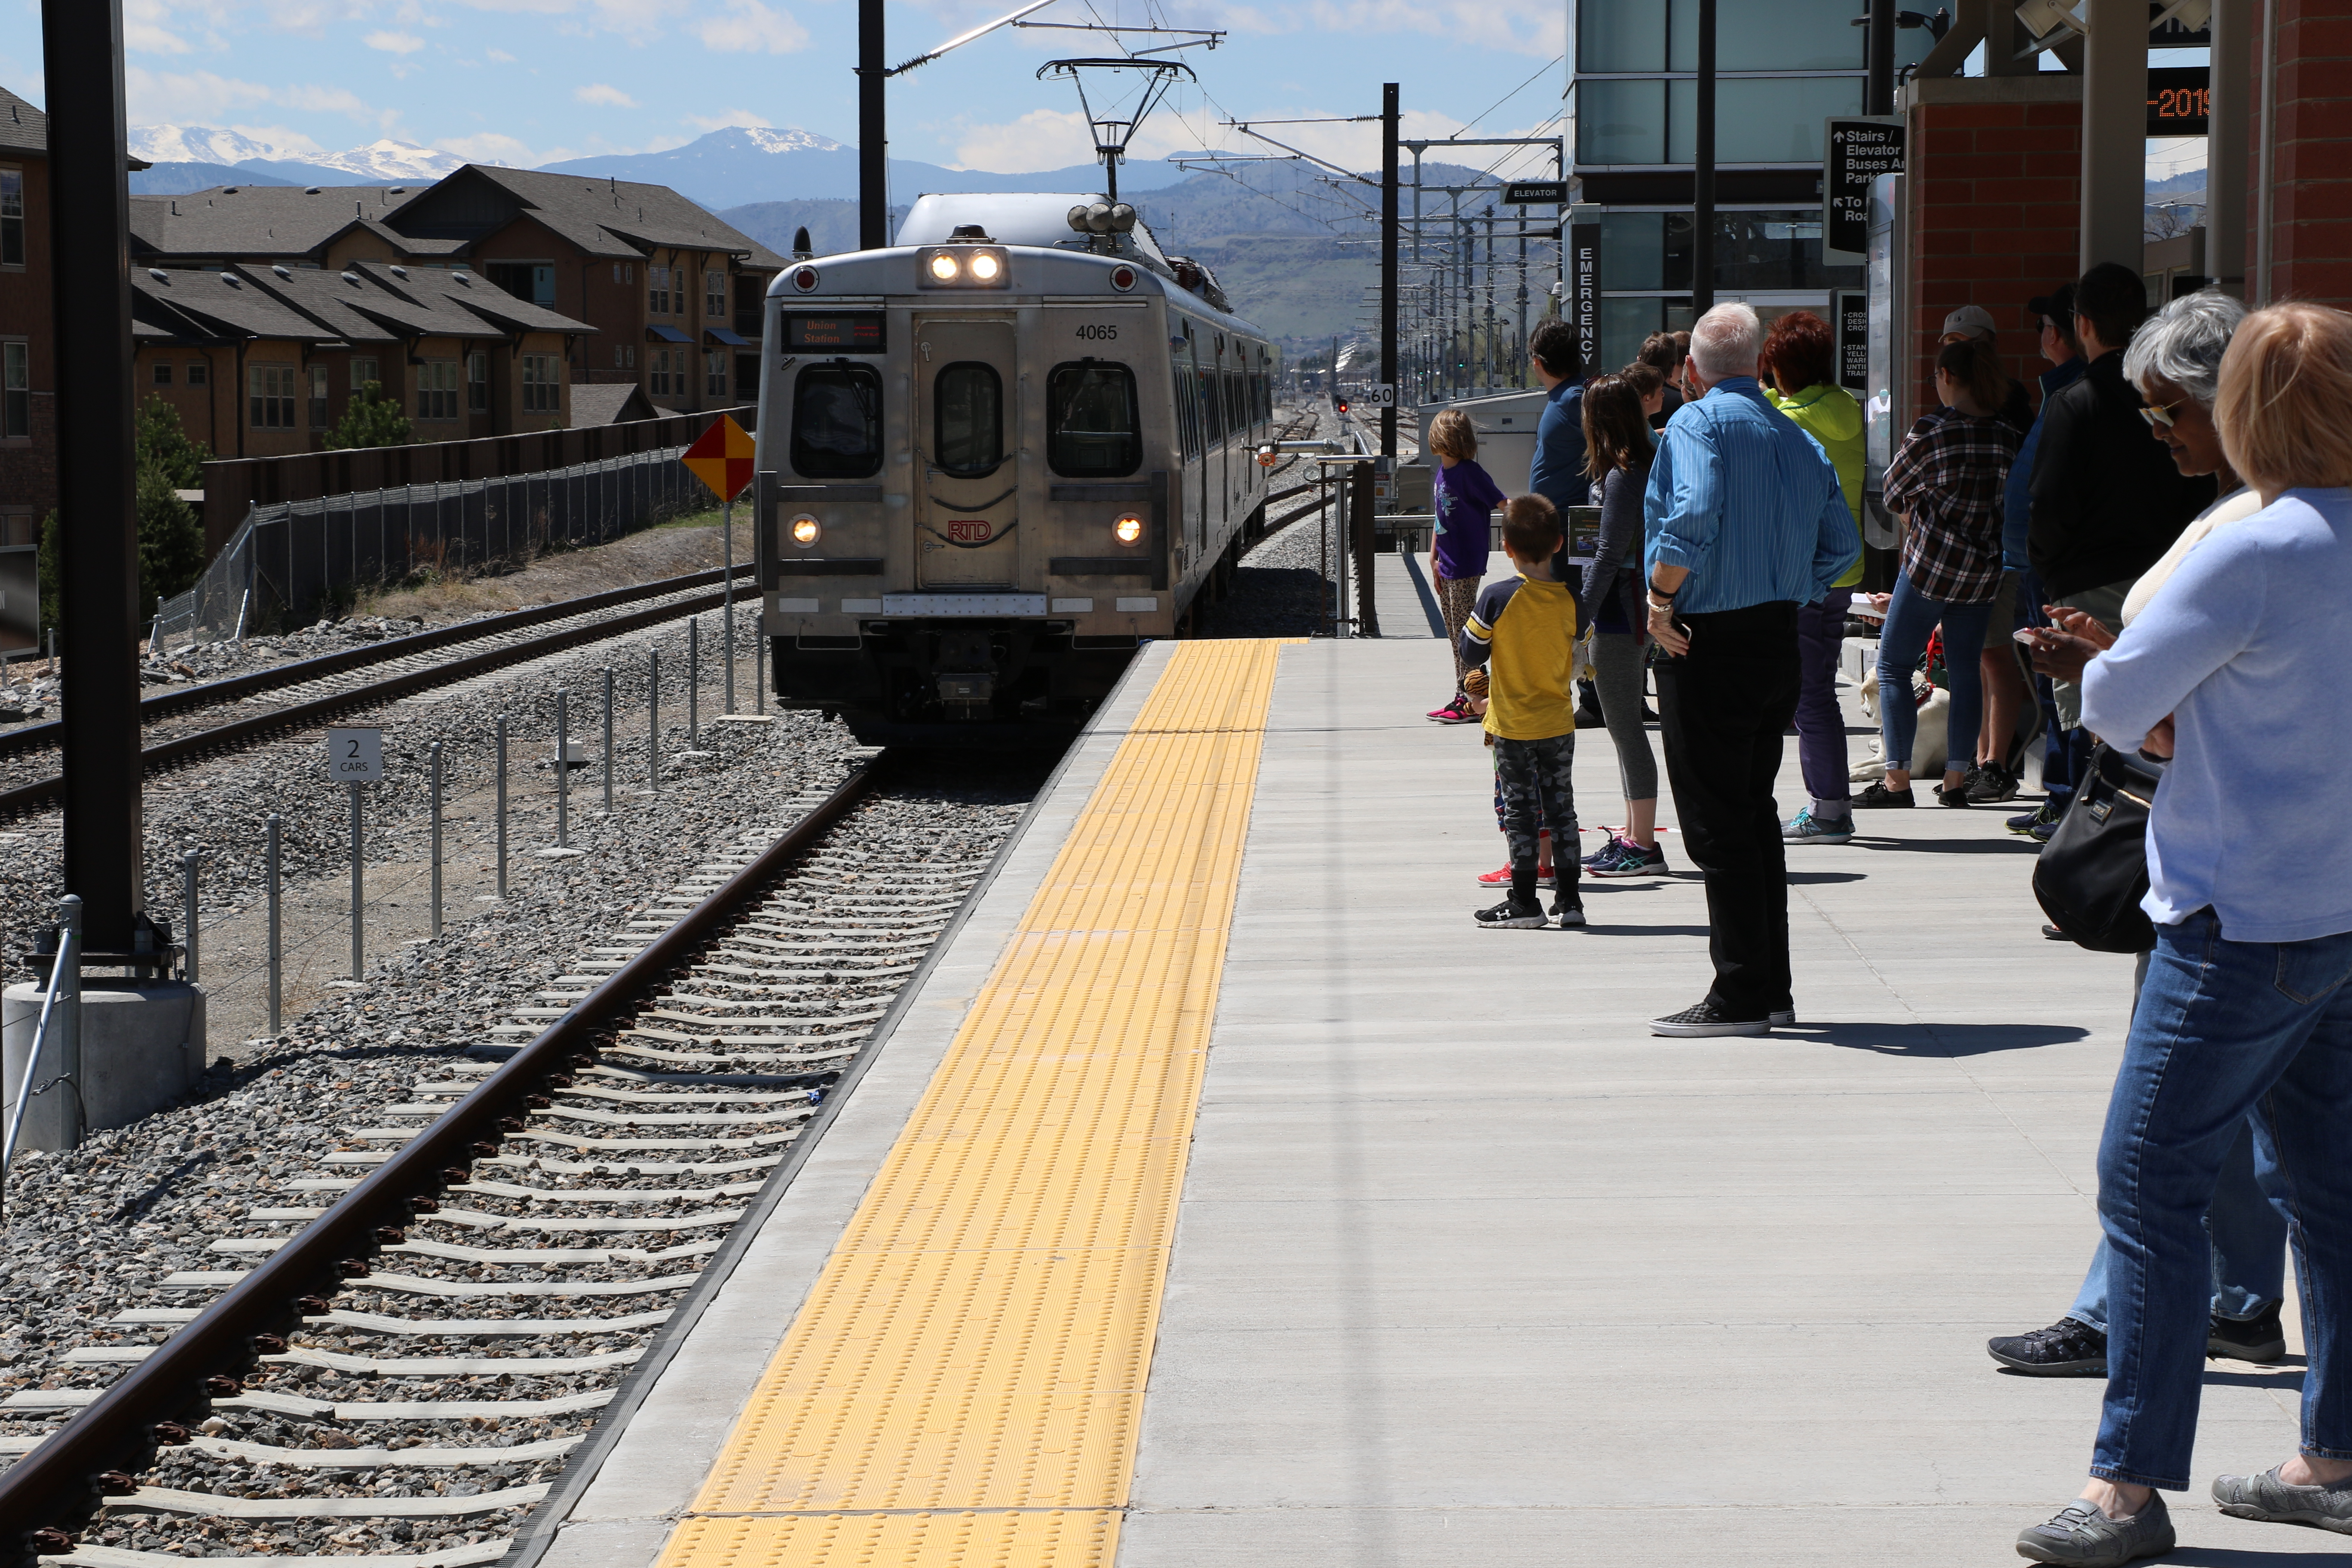 A commuter rail train pulls into the station as riders gather near the platform edge. Mountains stand in the background.